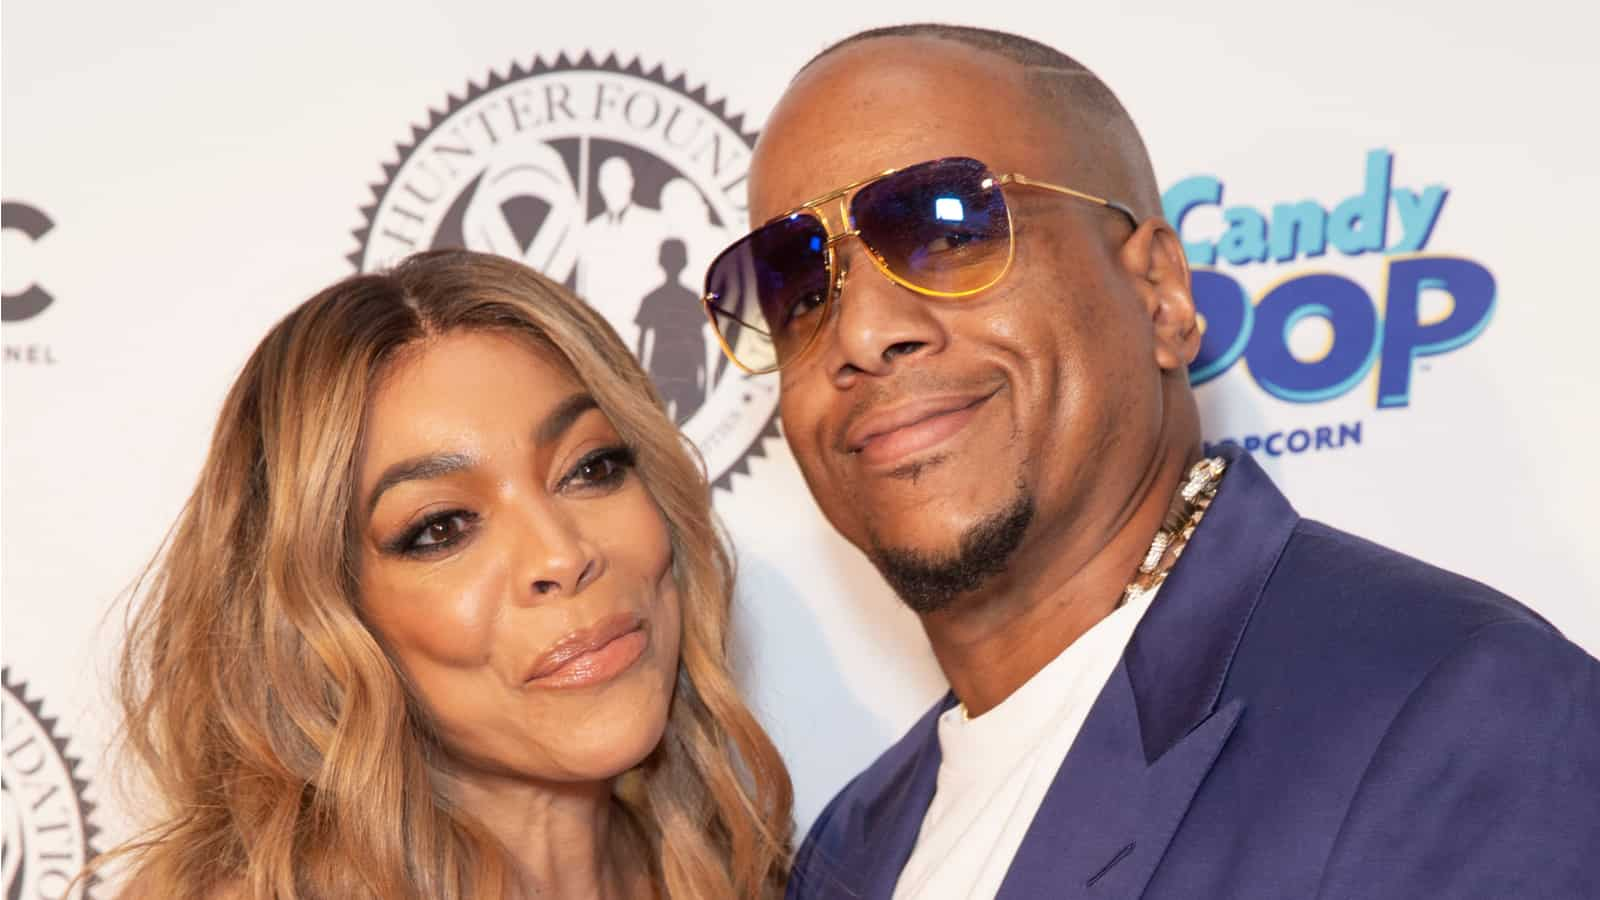 REPORT: Wendy Williams to Divorce Husband Over Illegitimate